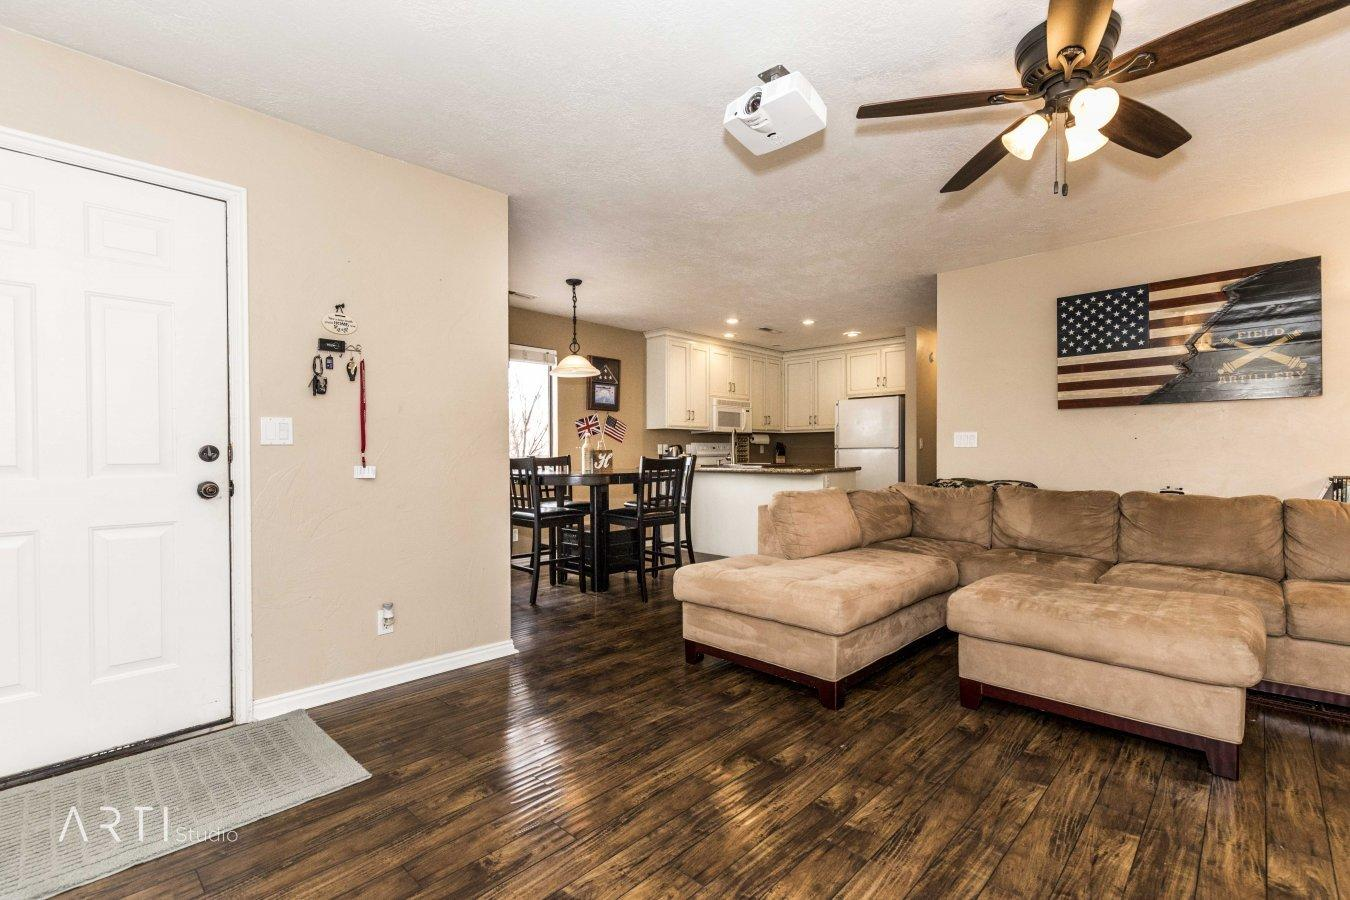 42 N 500 W Unit 306, Washington Ut 84780